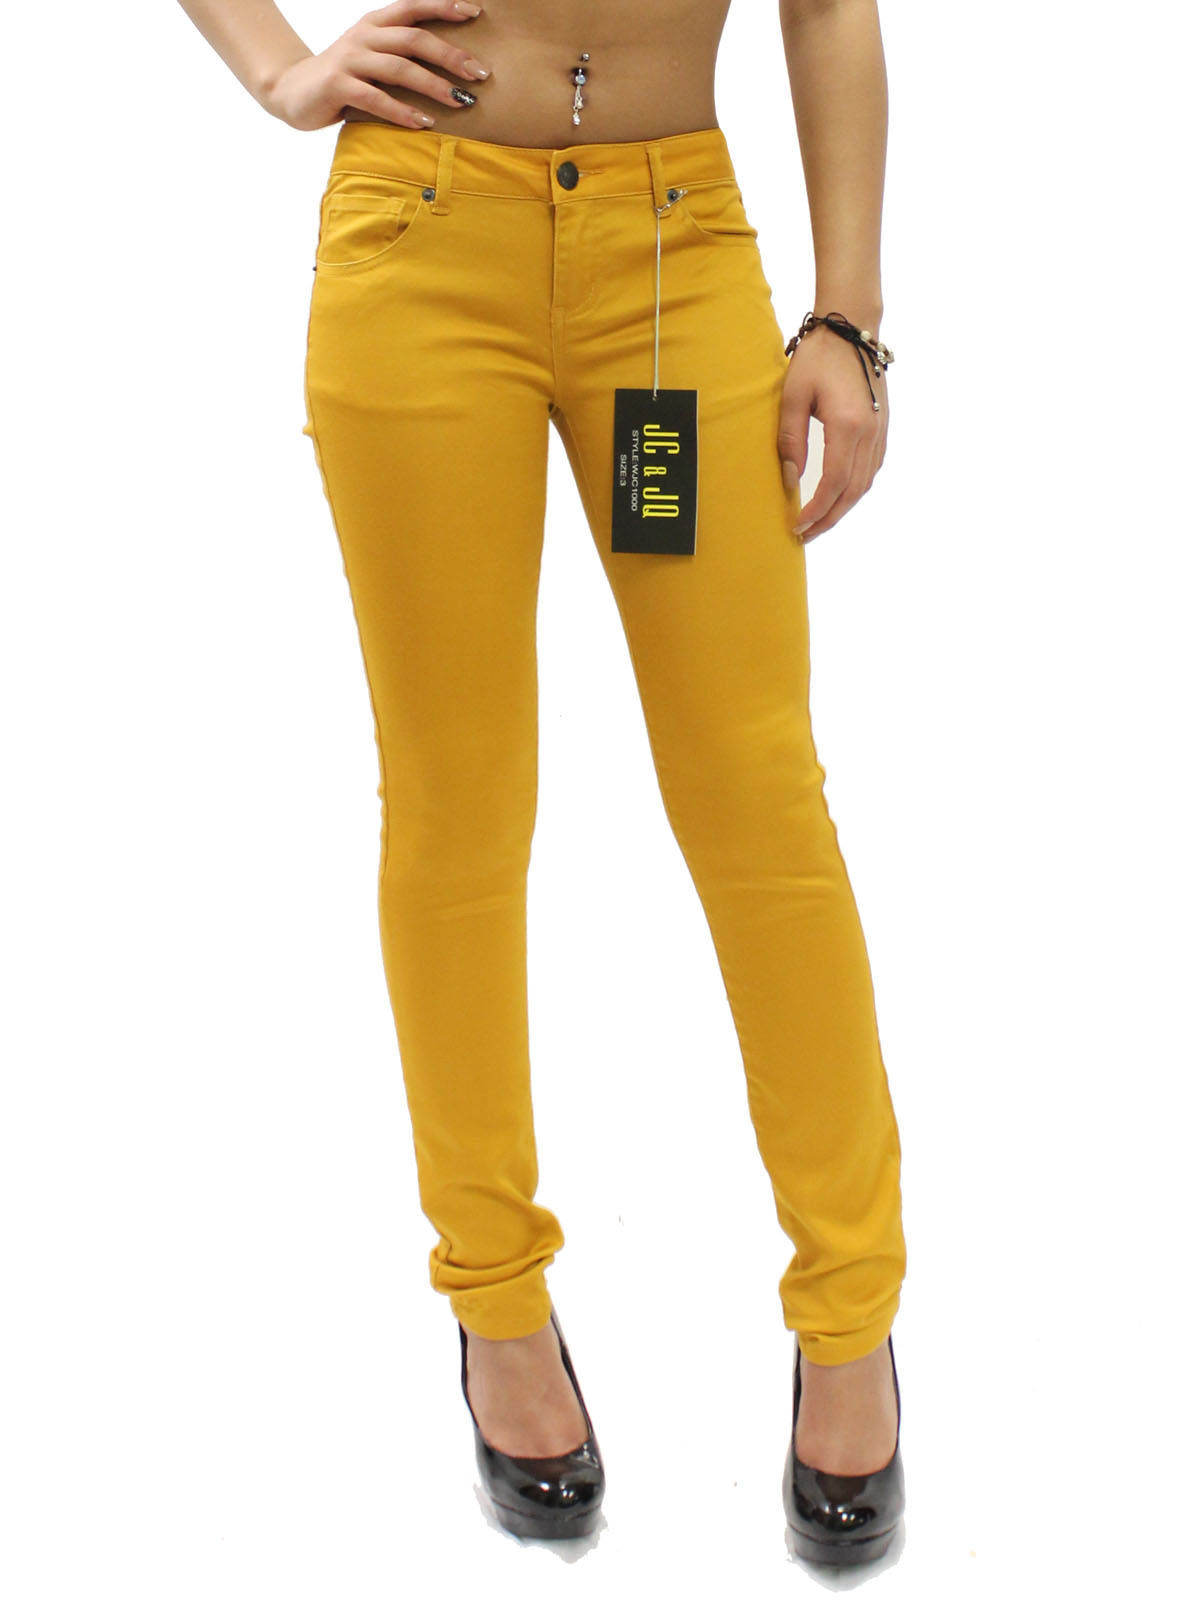 Beautiful If Youre Not A Fan On Neon Or Bright Yellow, Mustard Can Be Great For You As Its Less Bright And Acidic Since It Particularly Looks Good On Women With Dark Skin Tones  If You Think Mustard Pants Look Too Dramatic Or Too Seventies For You,